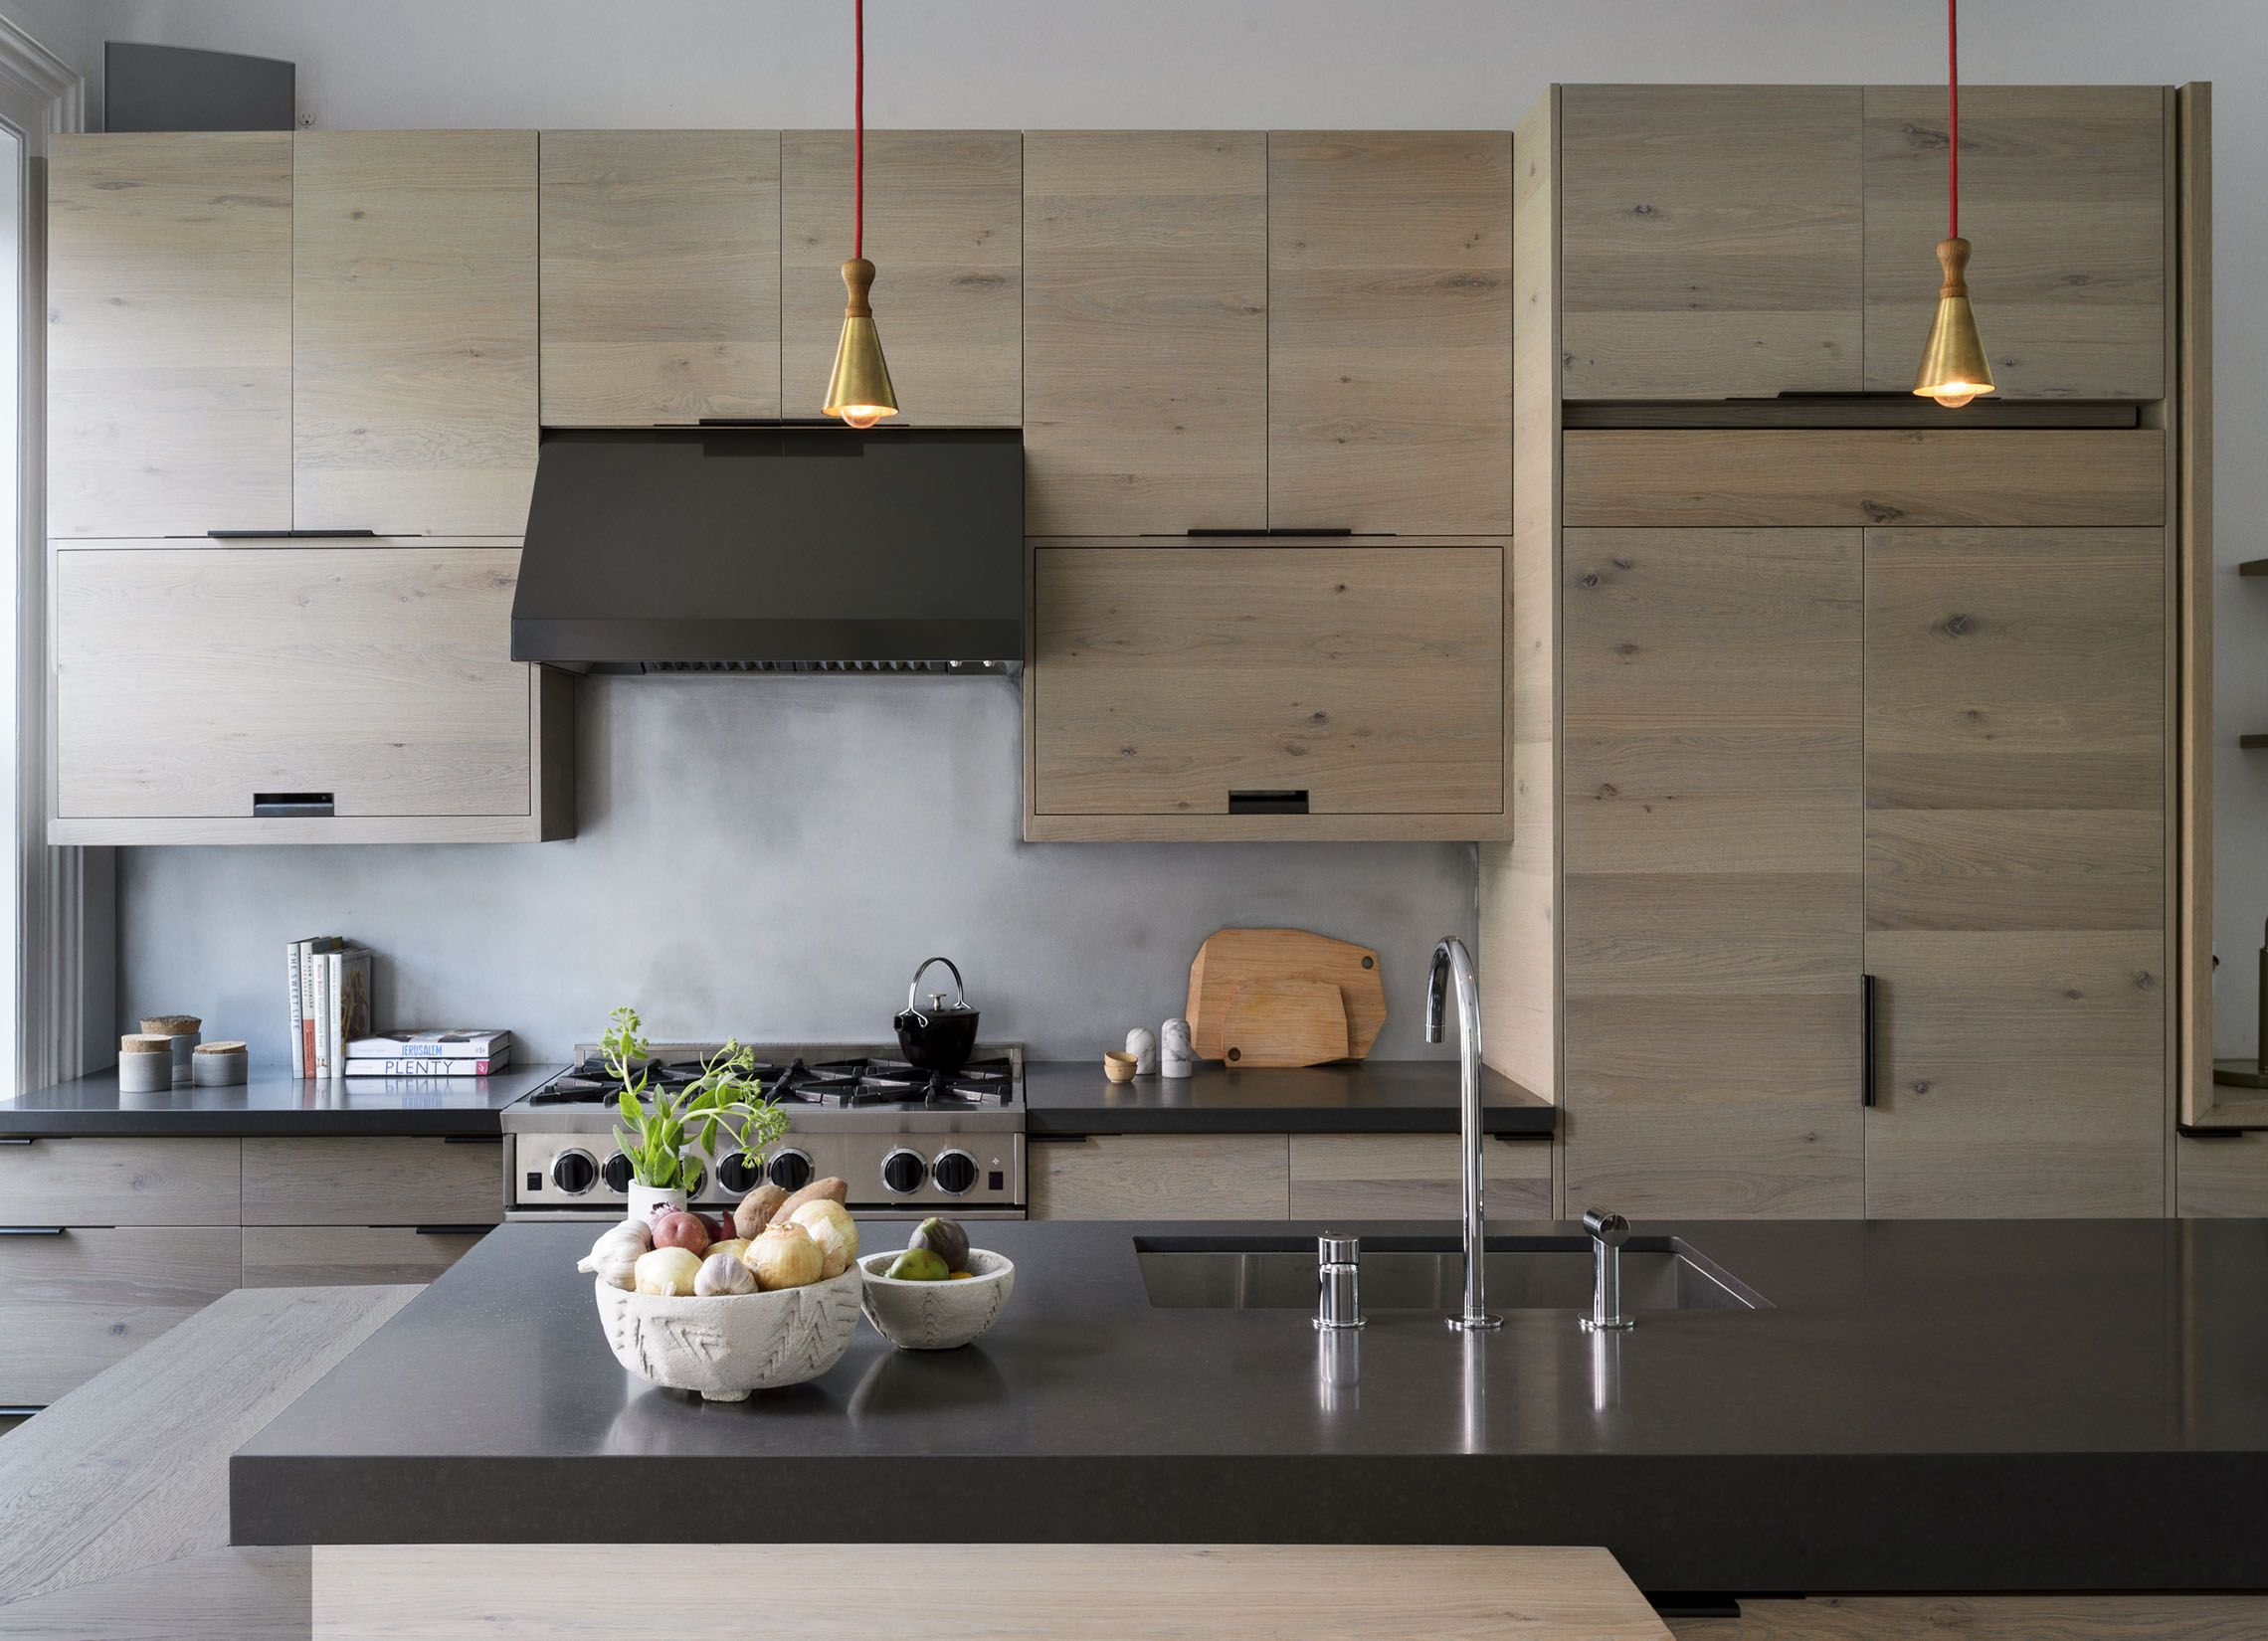 Kitchen Design Brooklyn Prepossessing Kitchen Of The Week Masterful Storage In A Workstead Design Decorating Inspiration